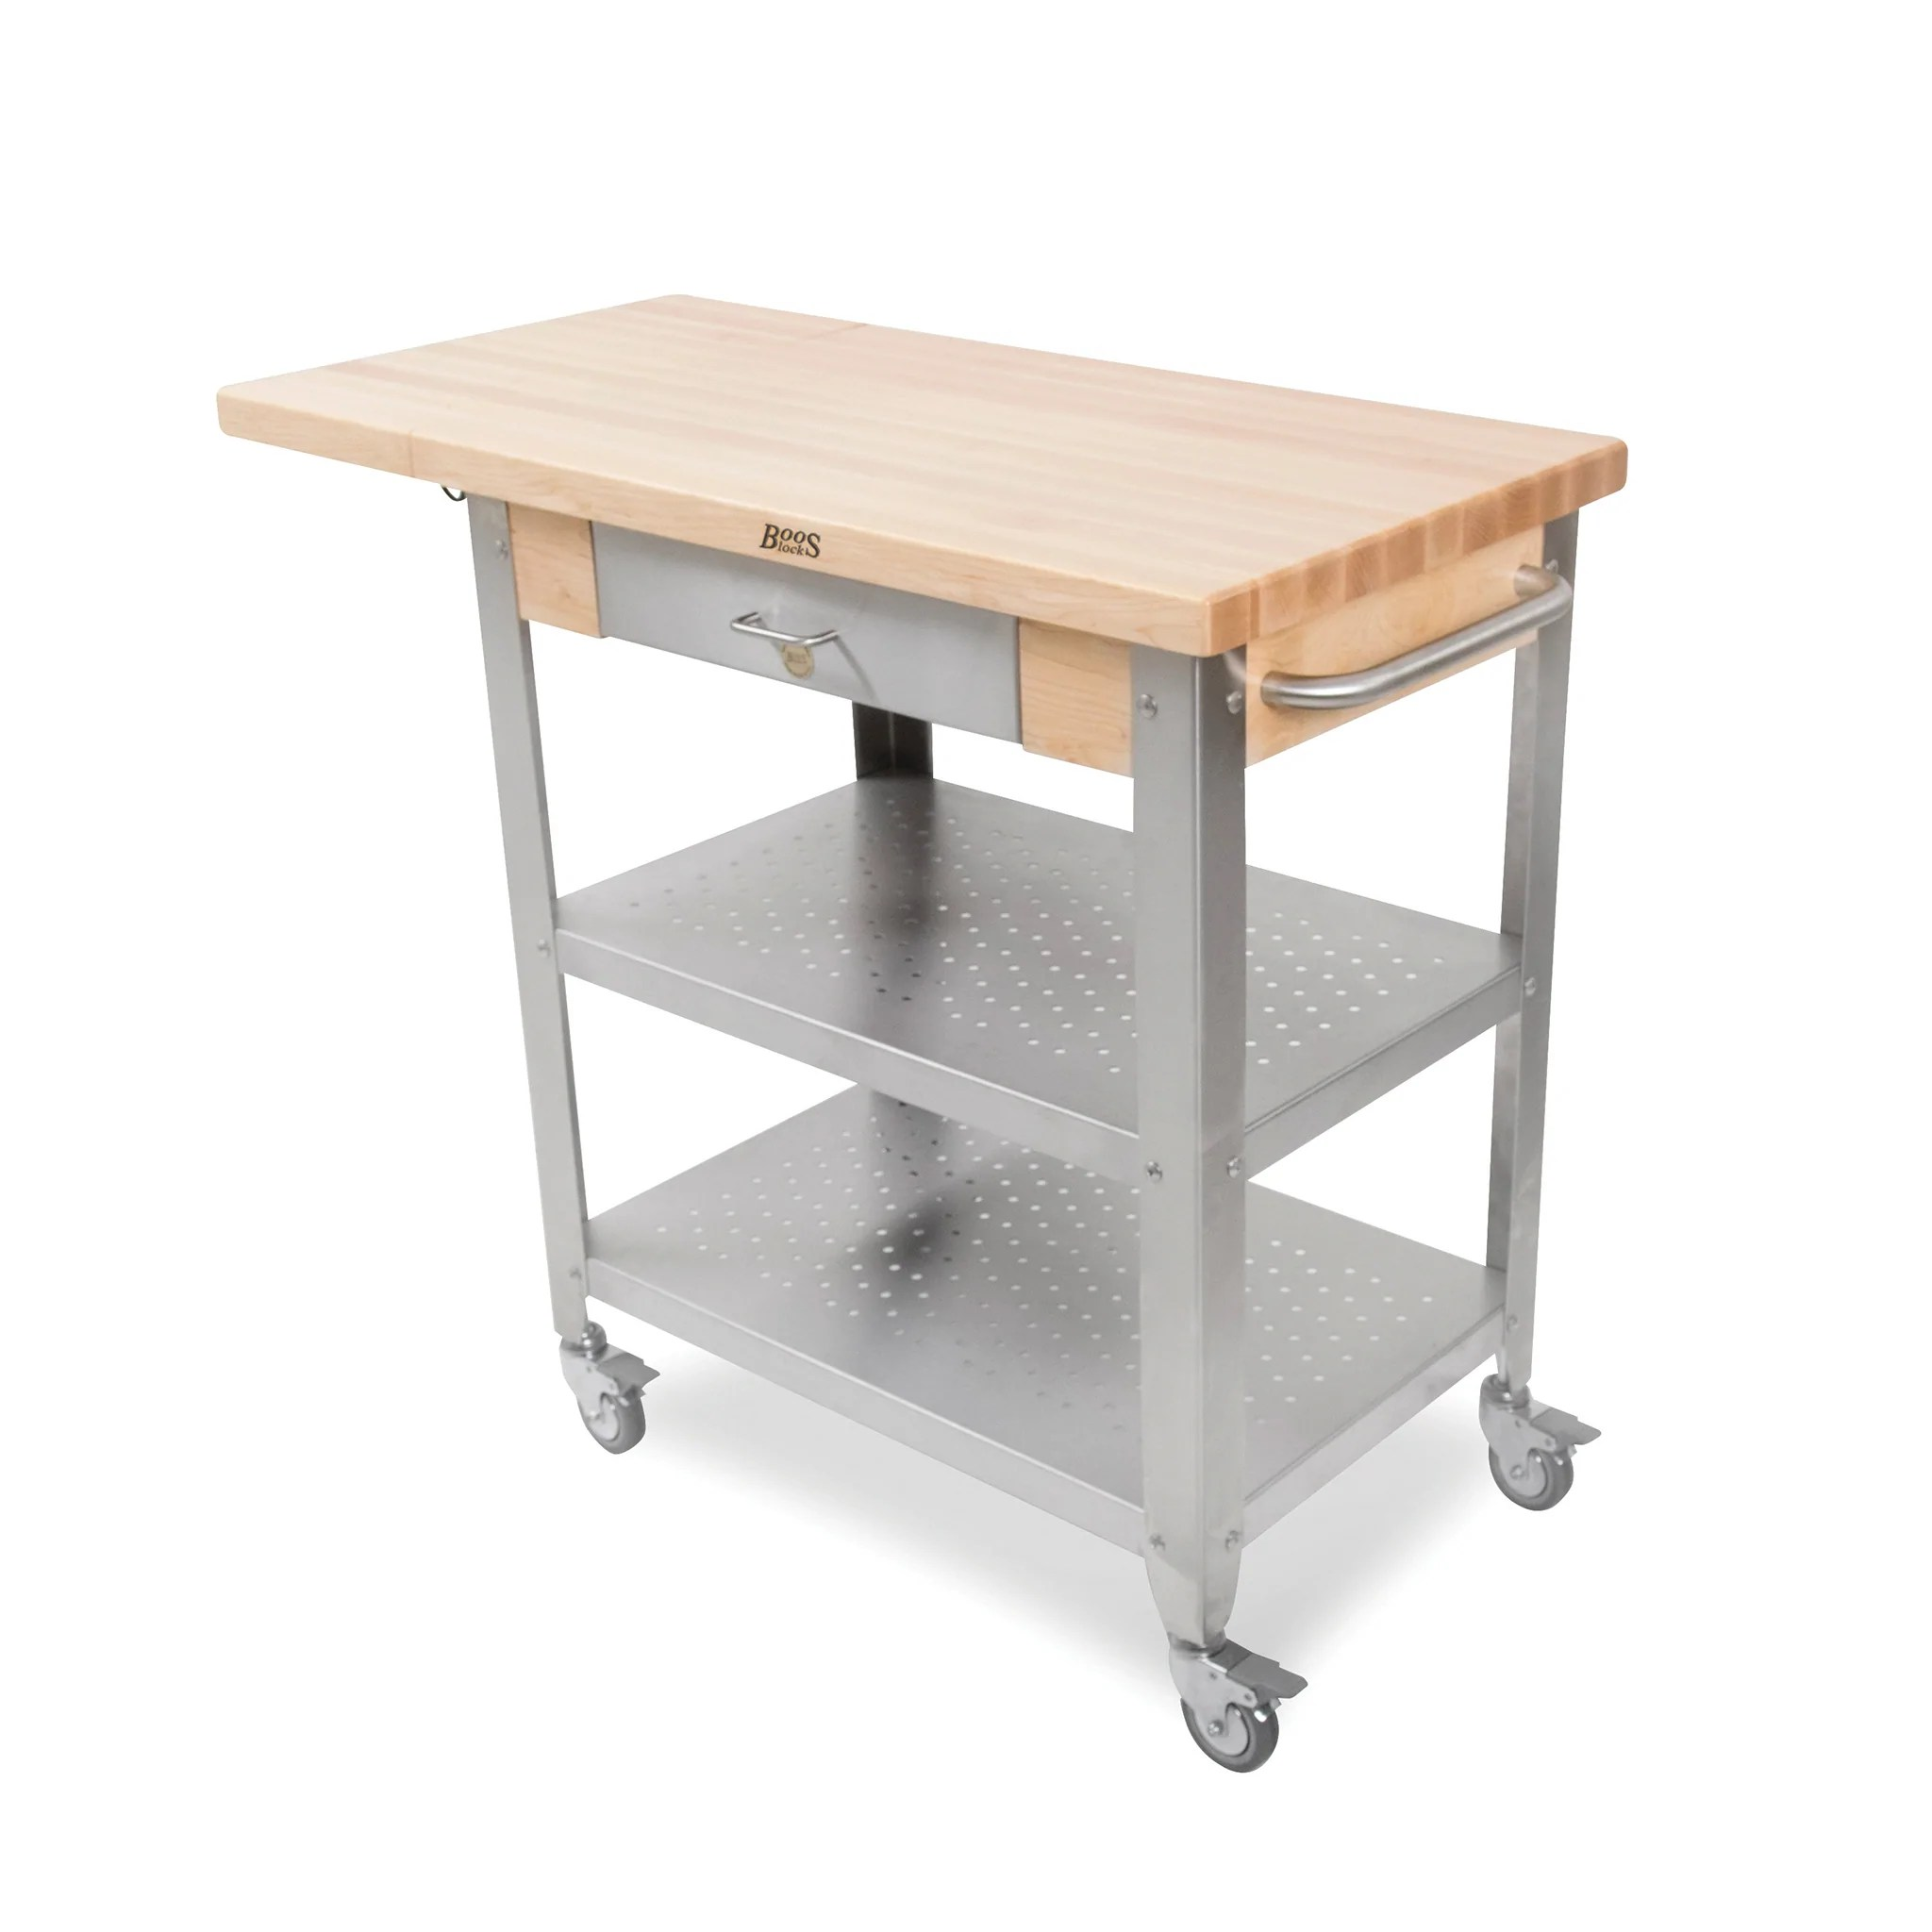 Cucina Kitchen Products Cucina Elegante Kitchen Cart 40 3 4